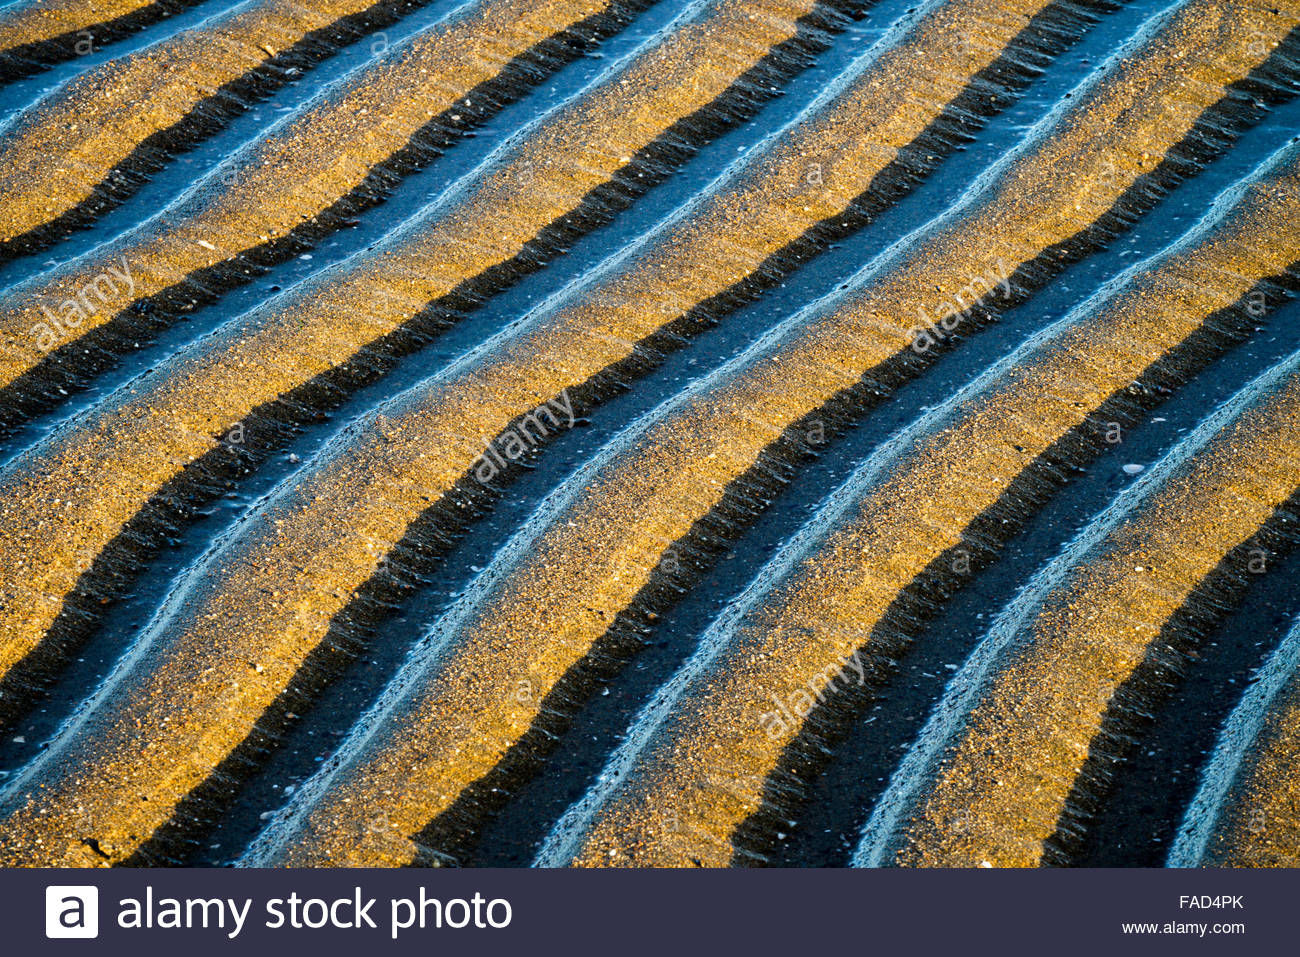 Sand Pattern Abstracts, Alameda, California - Stock Image